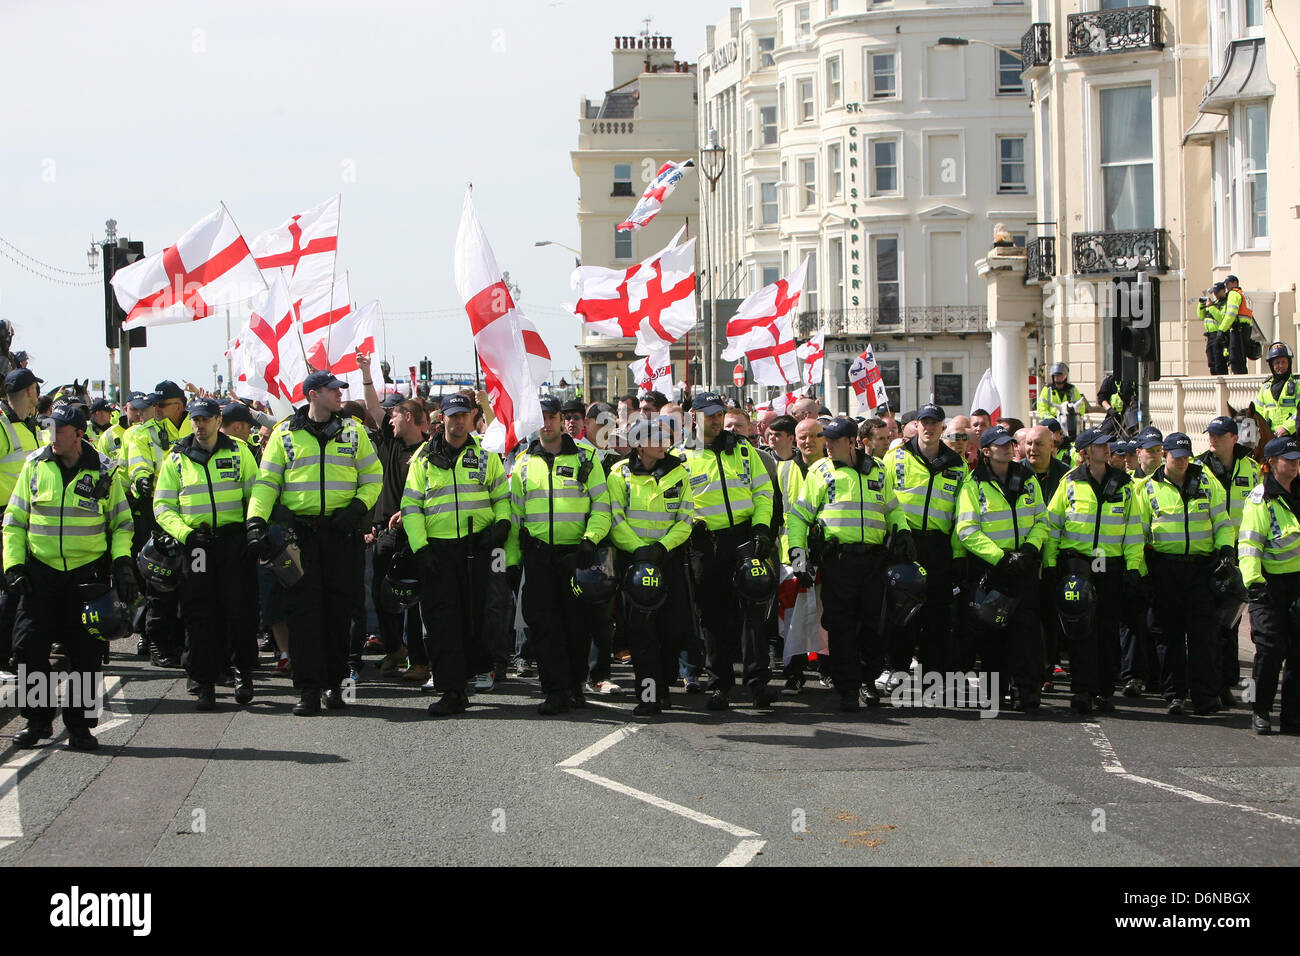 London, UK. 21st April, 2013.  EDL supporters take part in a 'March for England' in Brighton opposed by - Stock Image